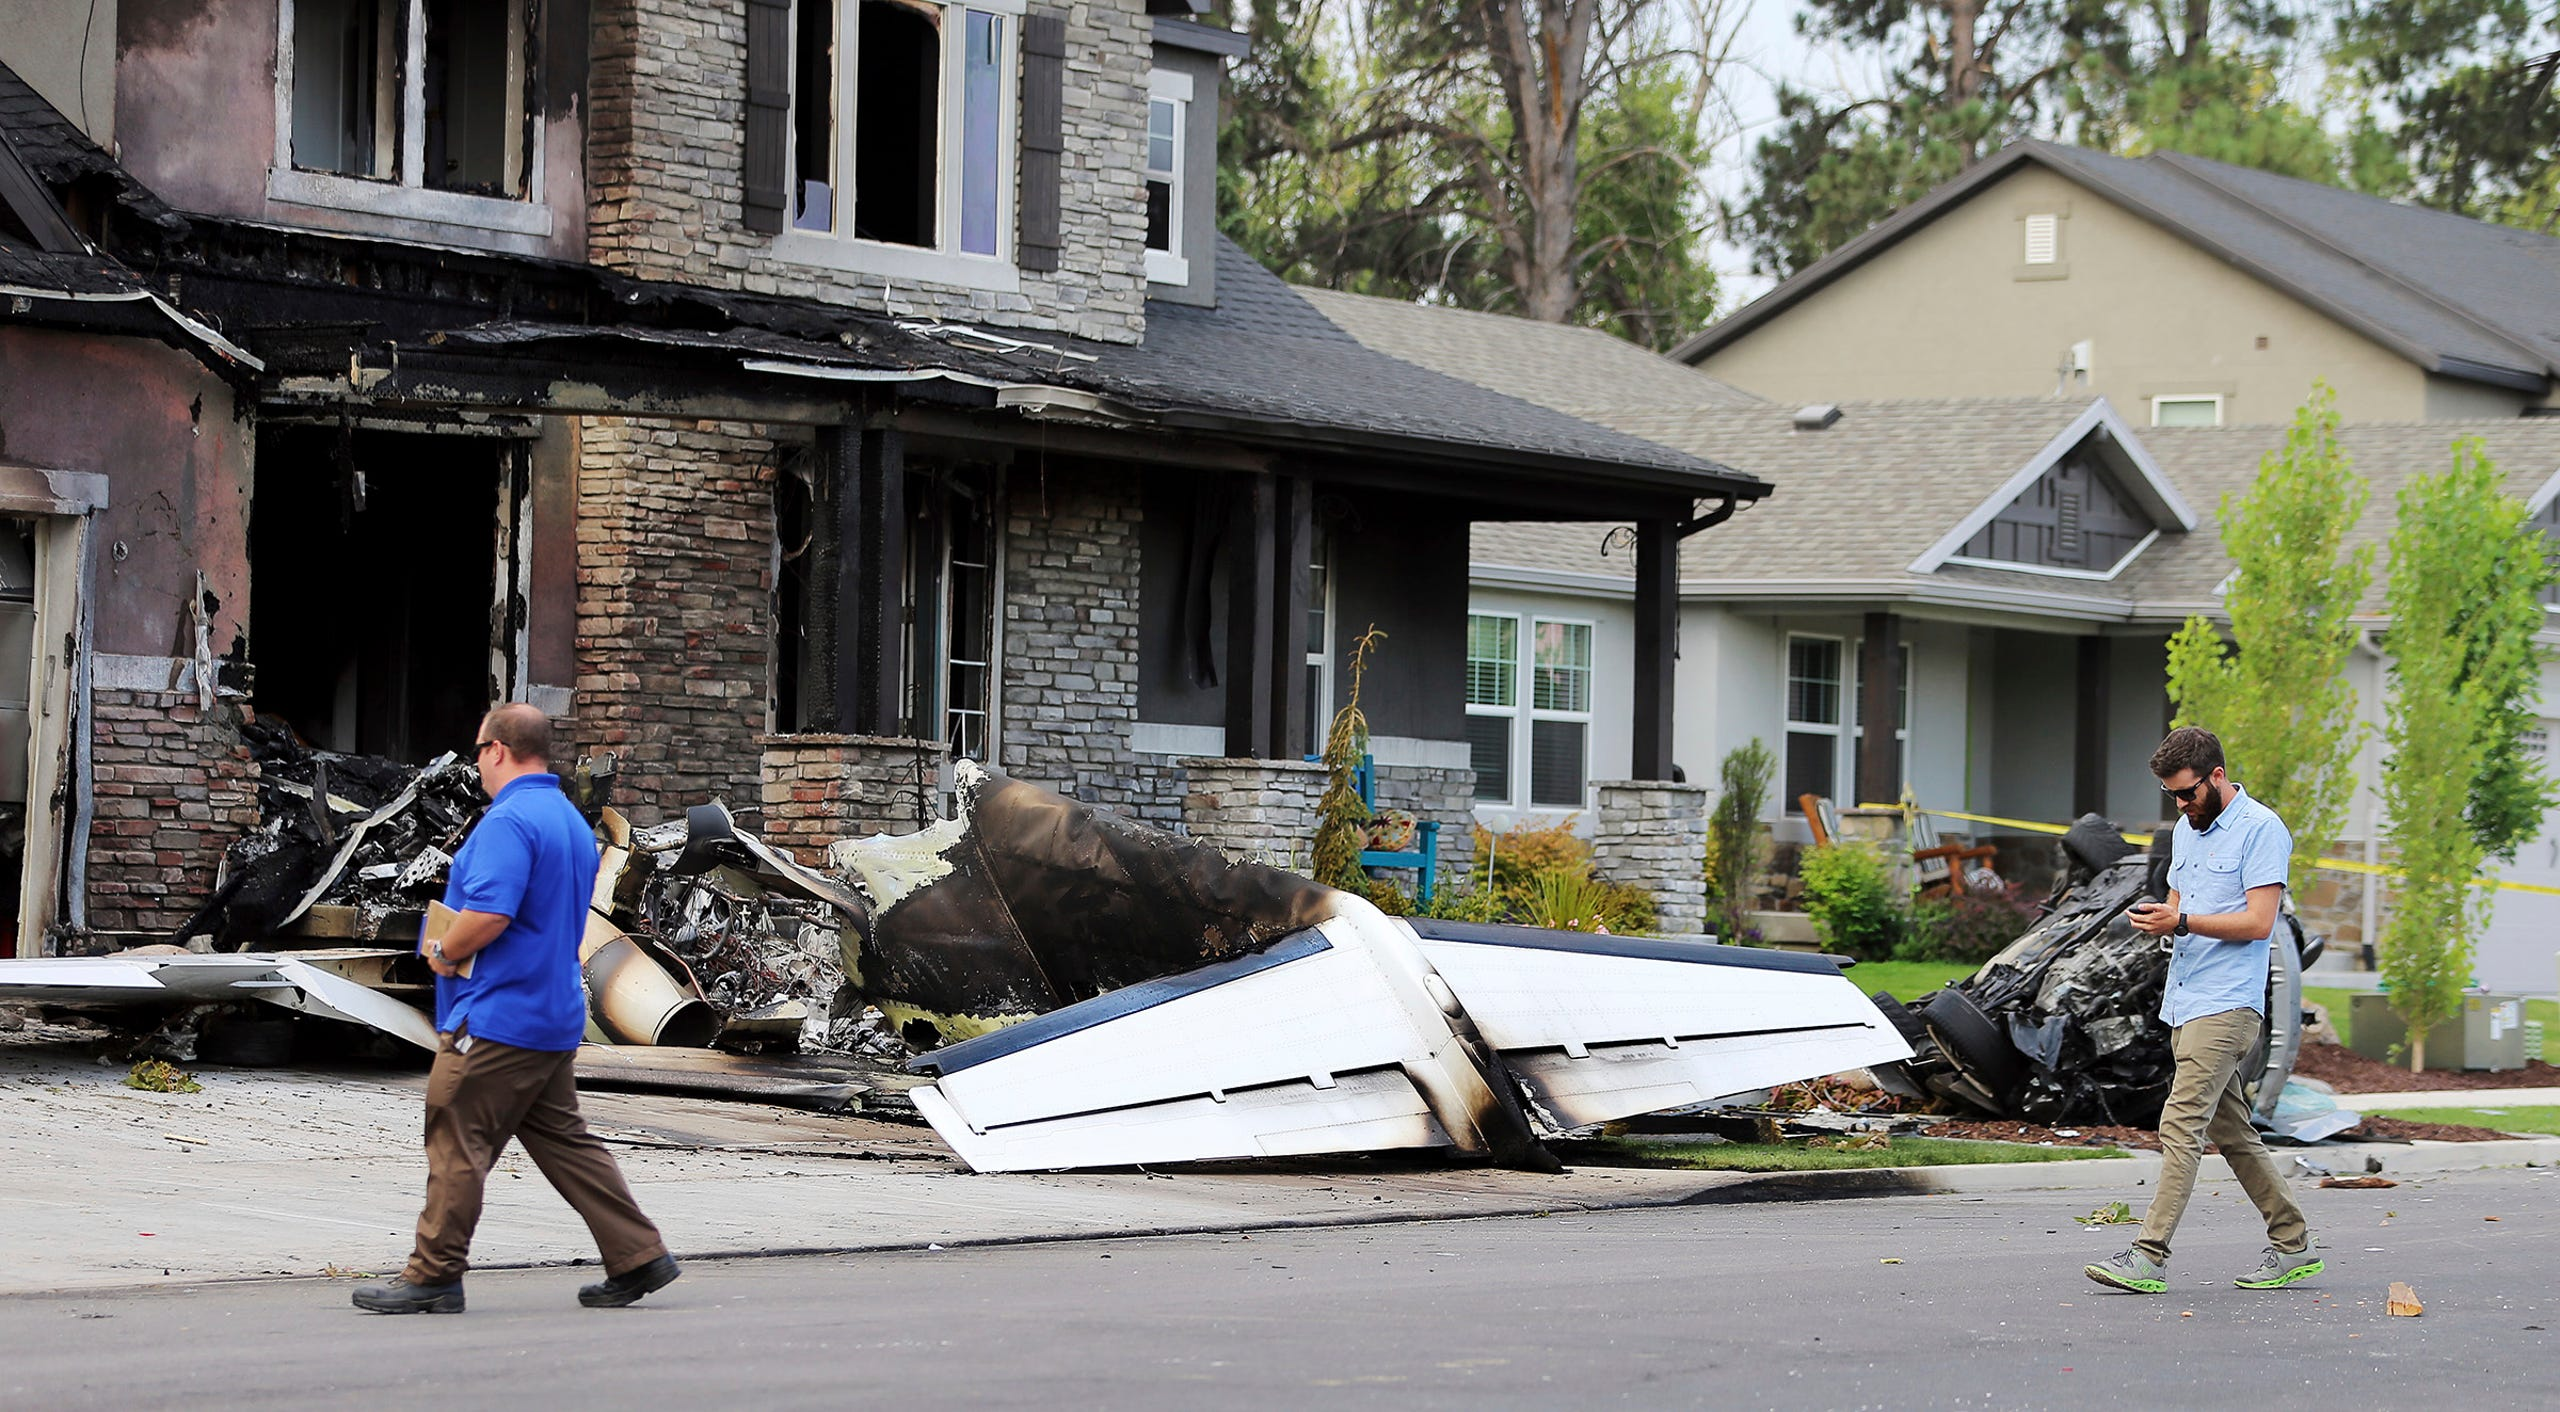 Utah man crashes plane into his own home Small Plane Crashes Into Home on plane crash into home, chicago plane crashes into home, private plane crashes into home, miami car crashes into home, colorado plane crashes into home, small plane going down,